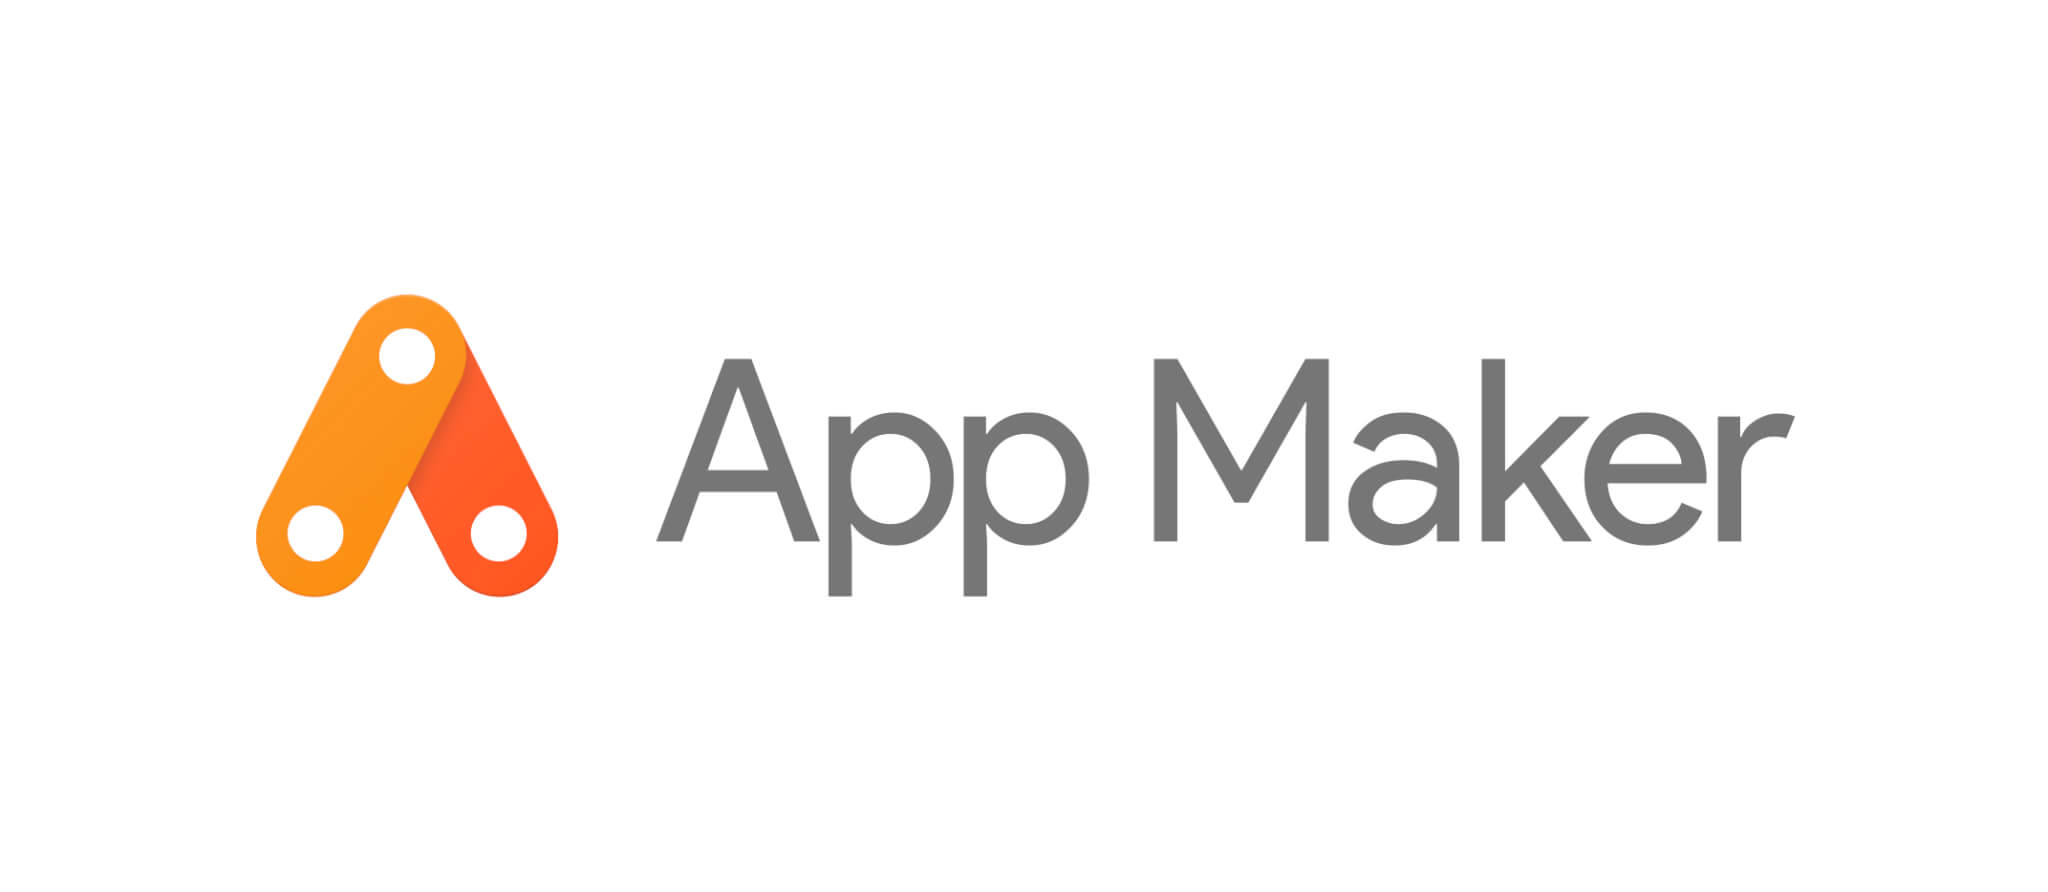 Google launches App Maker to help people easily build